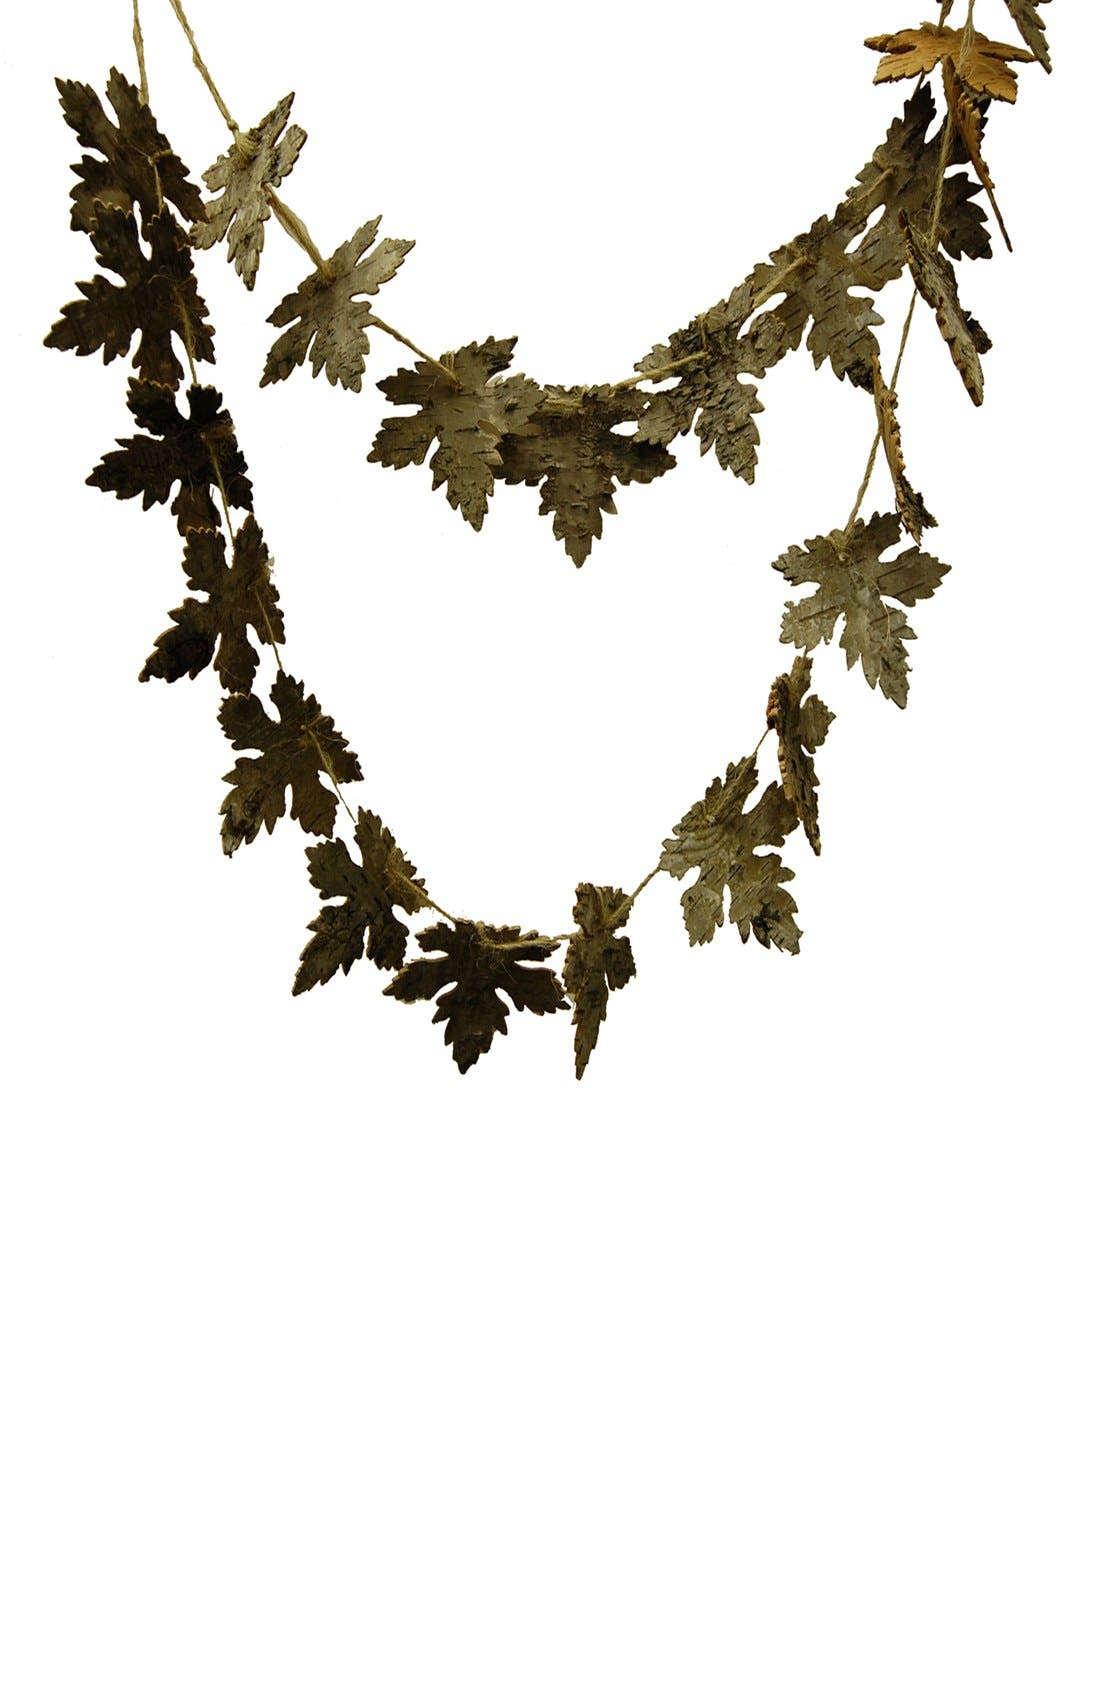 Main Image - Shea's Wildflower Artificial Maple Leaf Garland